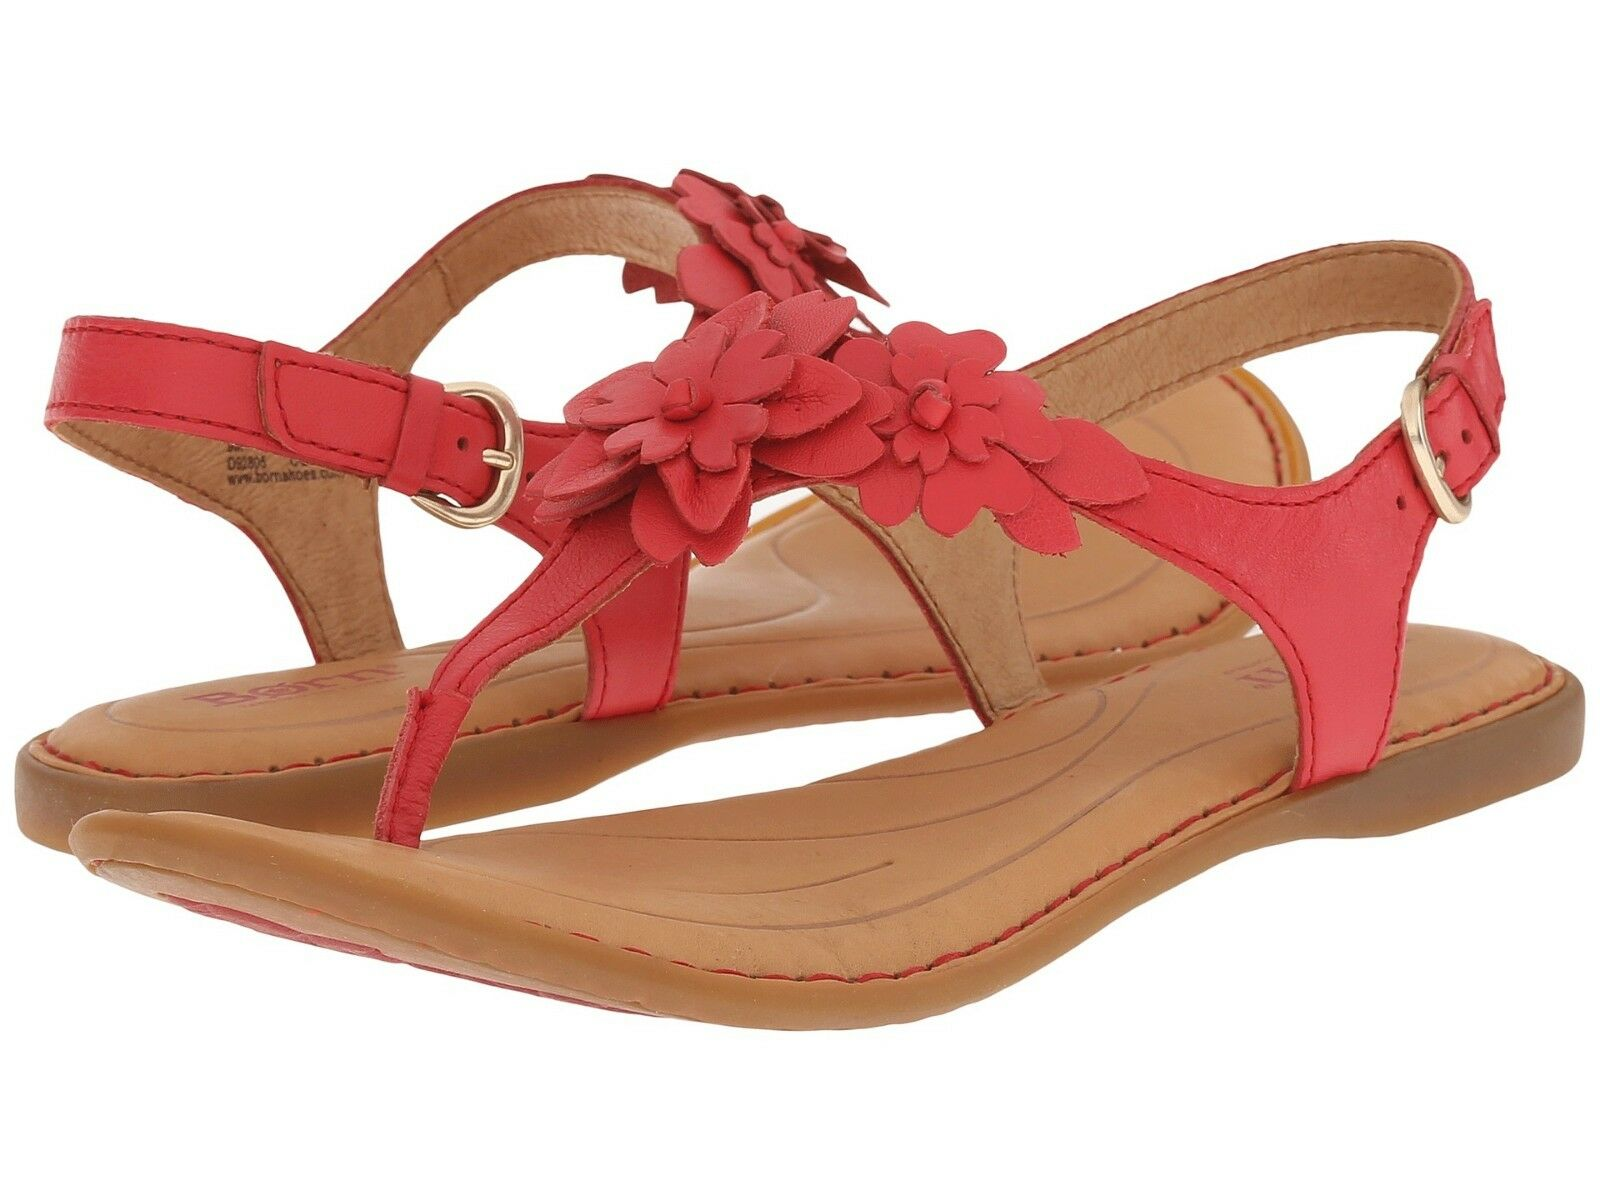 NEW Born D Anna Floral T-Strap Sandal in Red Leather, Women Size 5